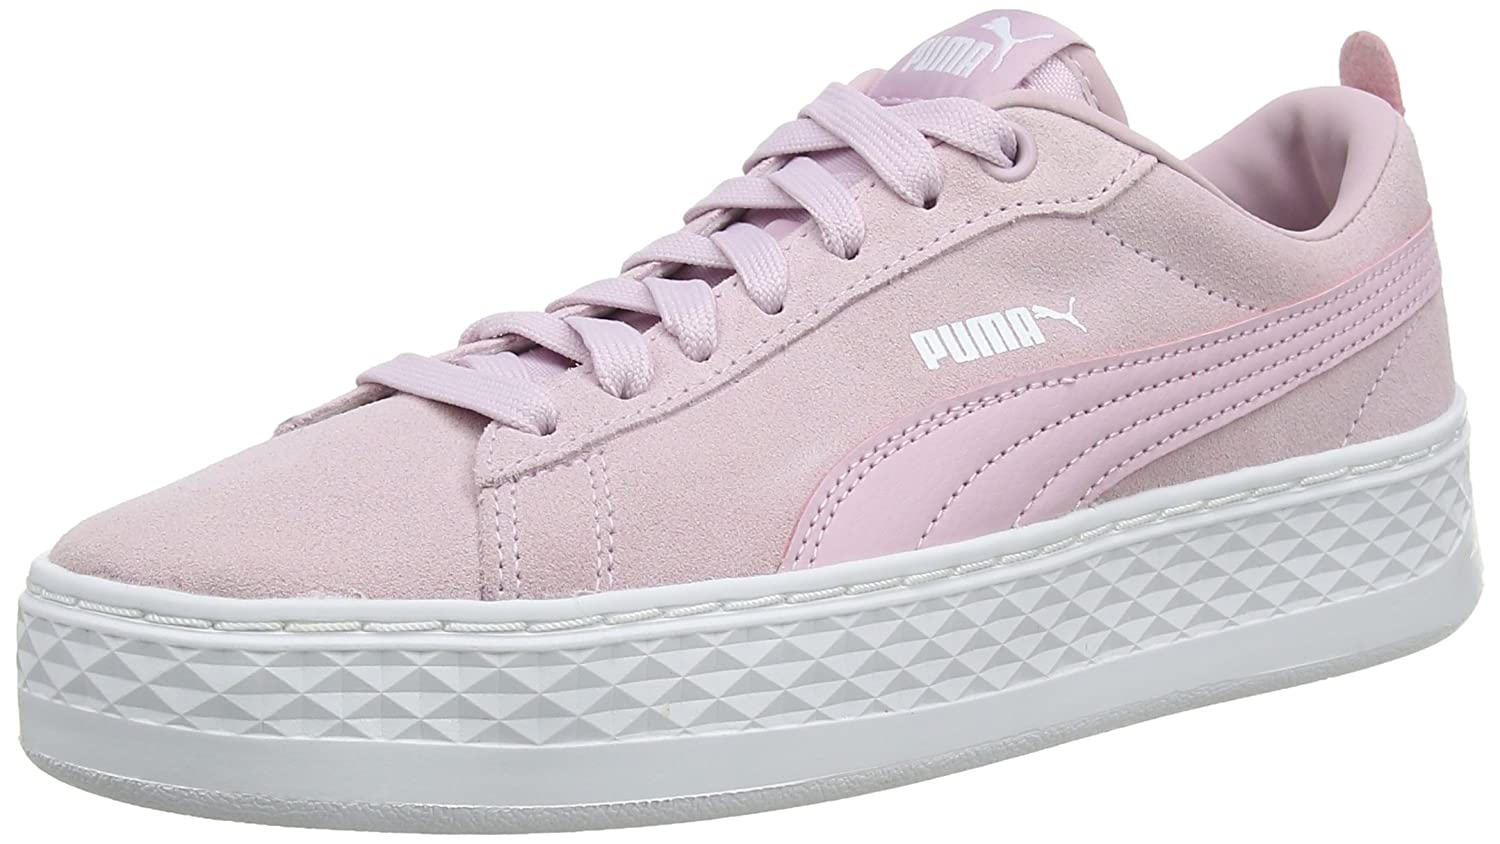 Puma Smash Platform SD, Zapatillas para Mujer 37 EU|Rosa (Winsome Orchid-winsome Orchid 06)